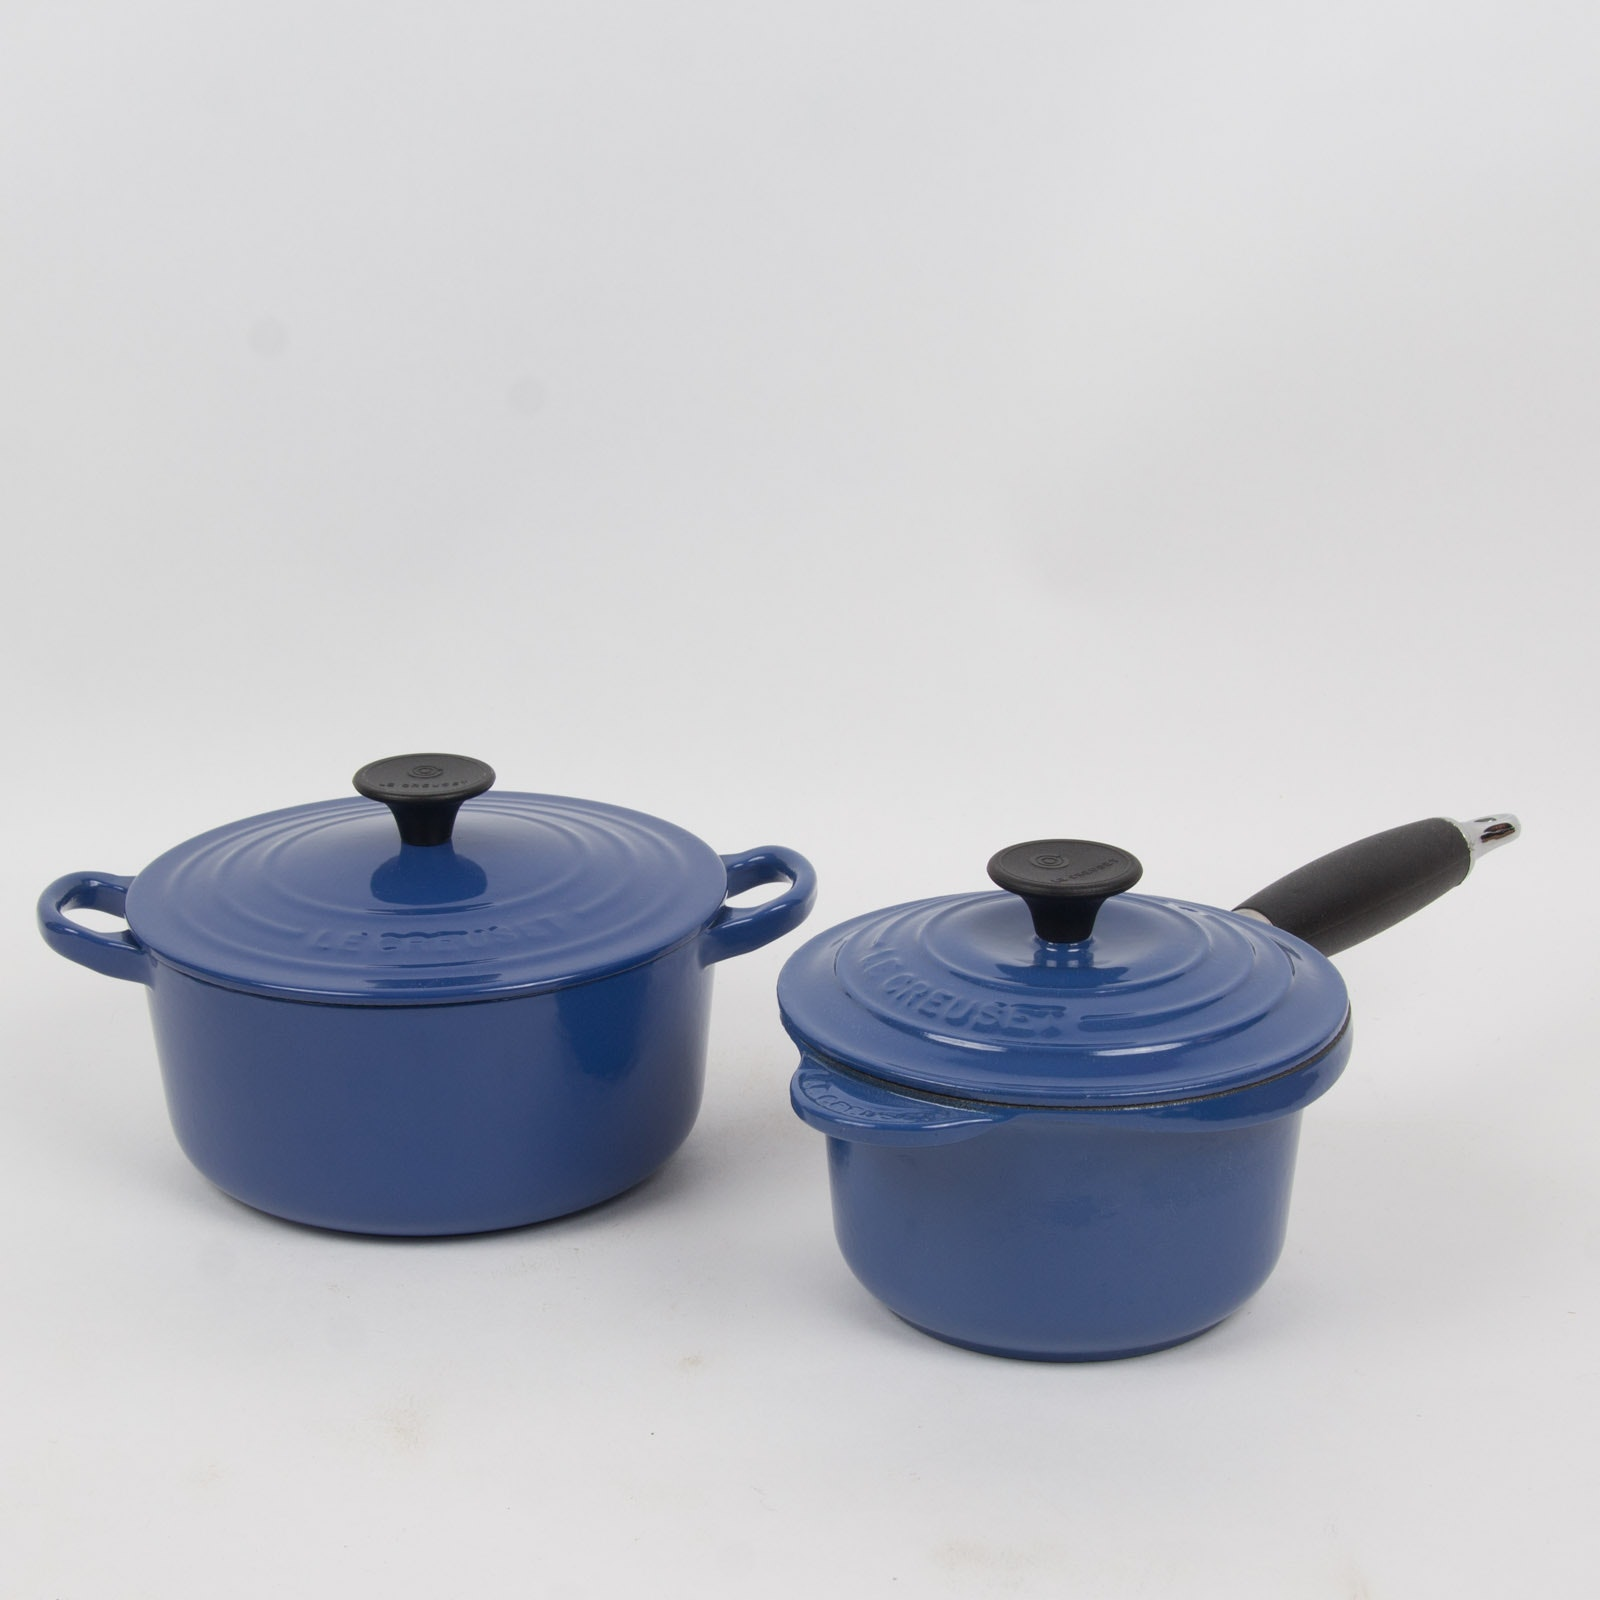 Enamel over Cast Iron Blue Cookware By Le Creuset